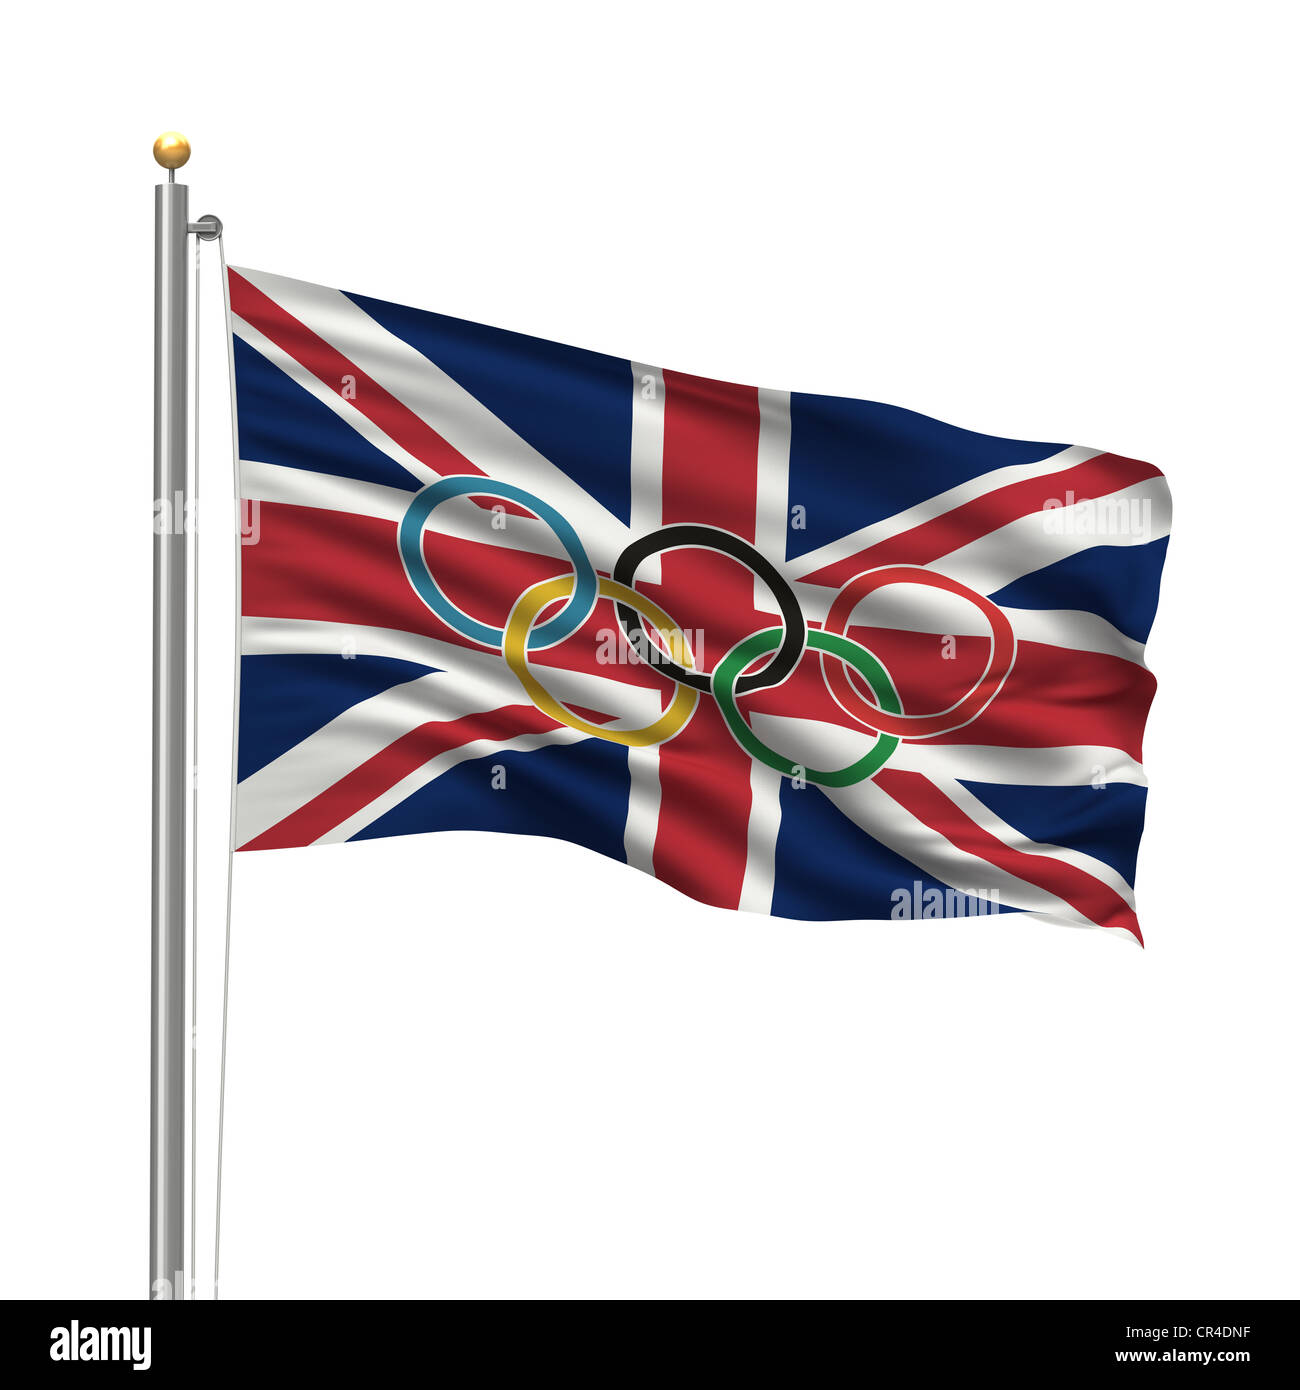 Flag of the United Kingdom with Olympic rings - Stock Image